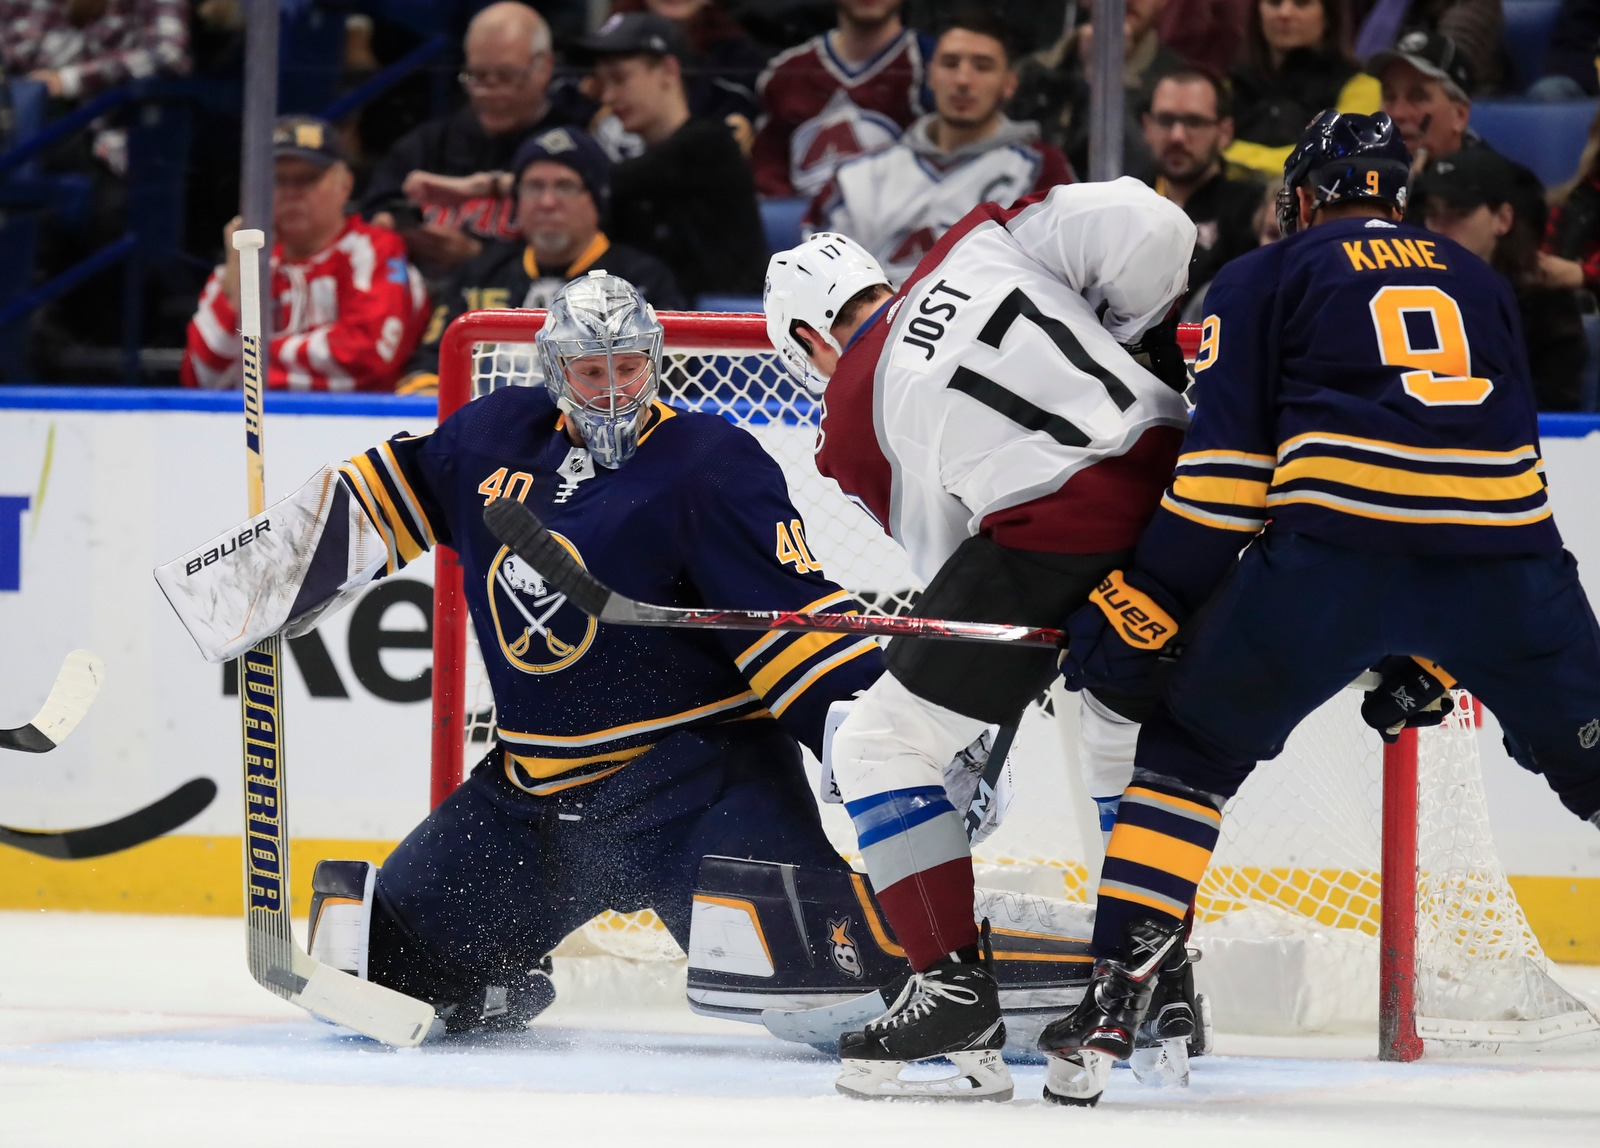 Buffalo Sabres goaltender Robin Lehner makes a save on Colorado Avalanche's Tyson Jost during first period action.